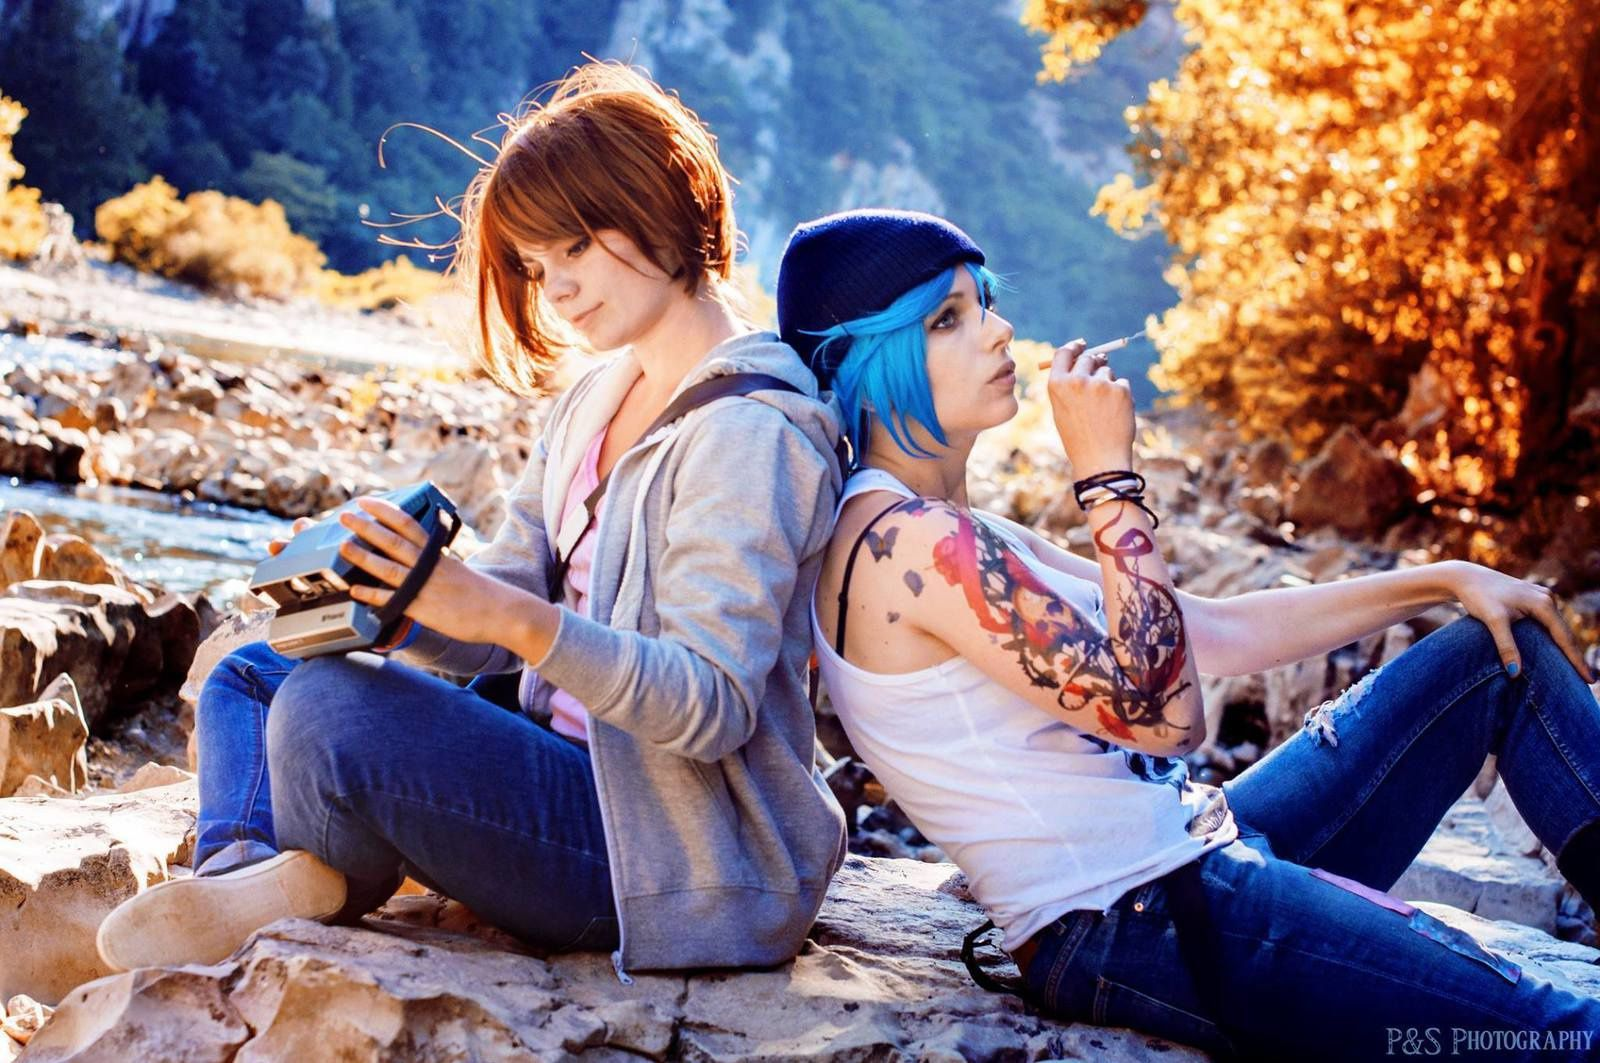 Parle-Moi Cosplay #162,5 : Chech Cosplay